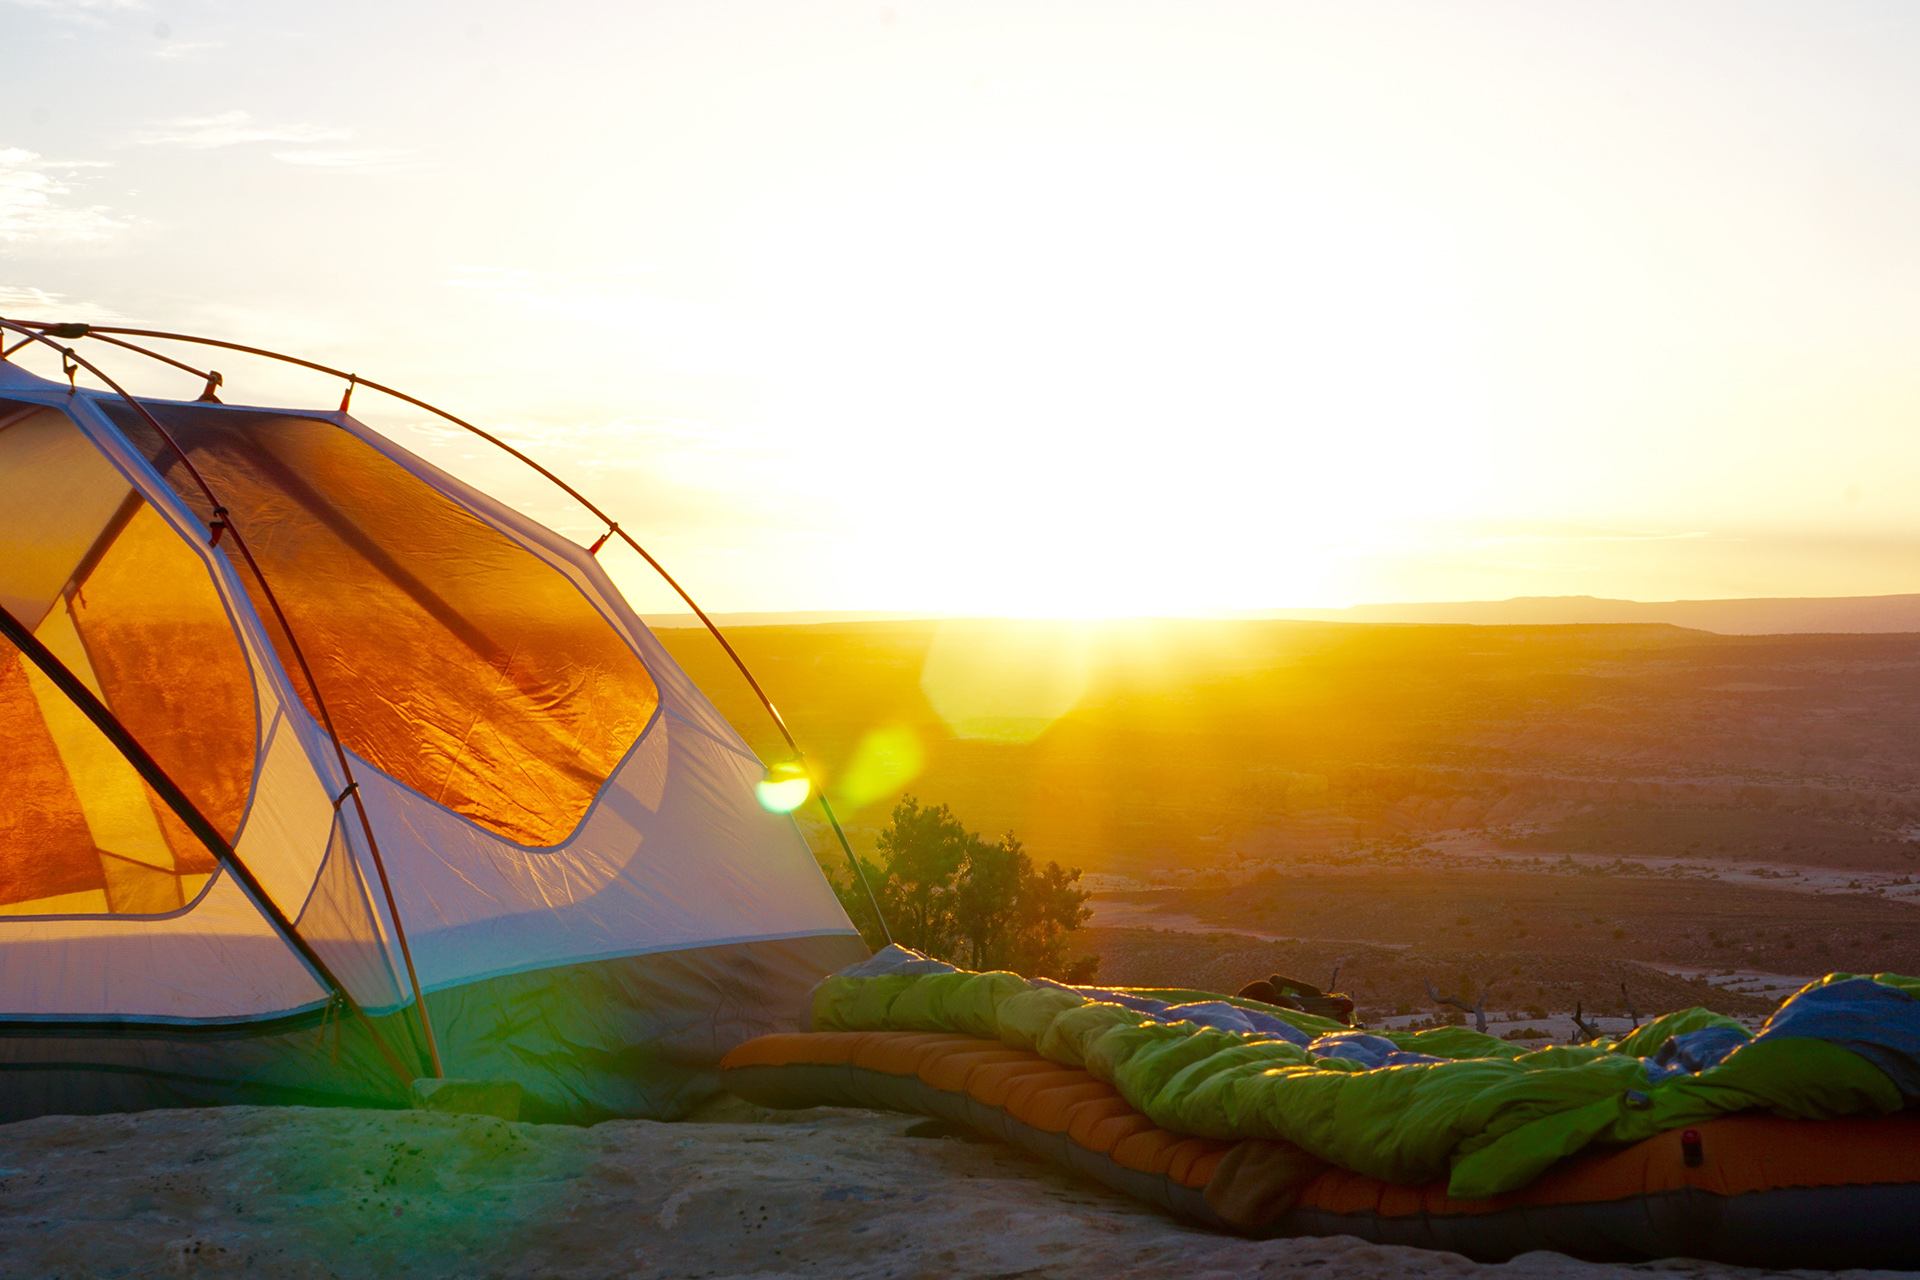 Camping ideas for organizing and storing camp gear